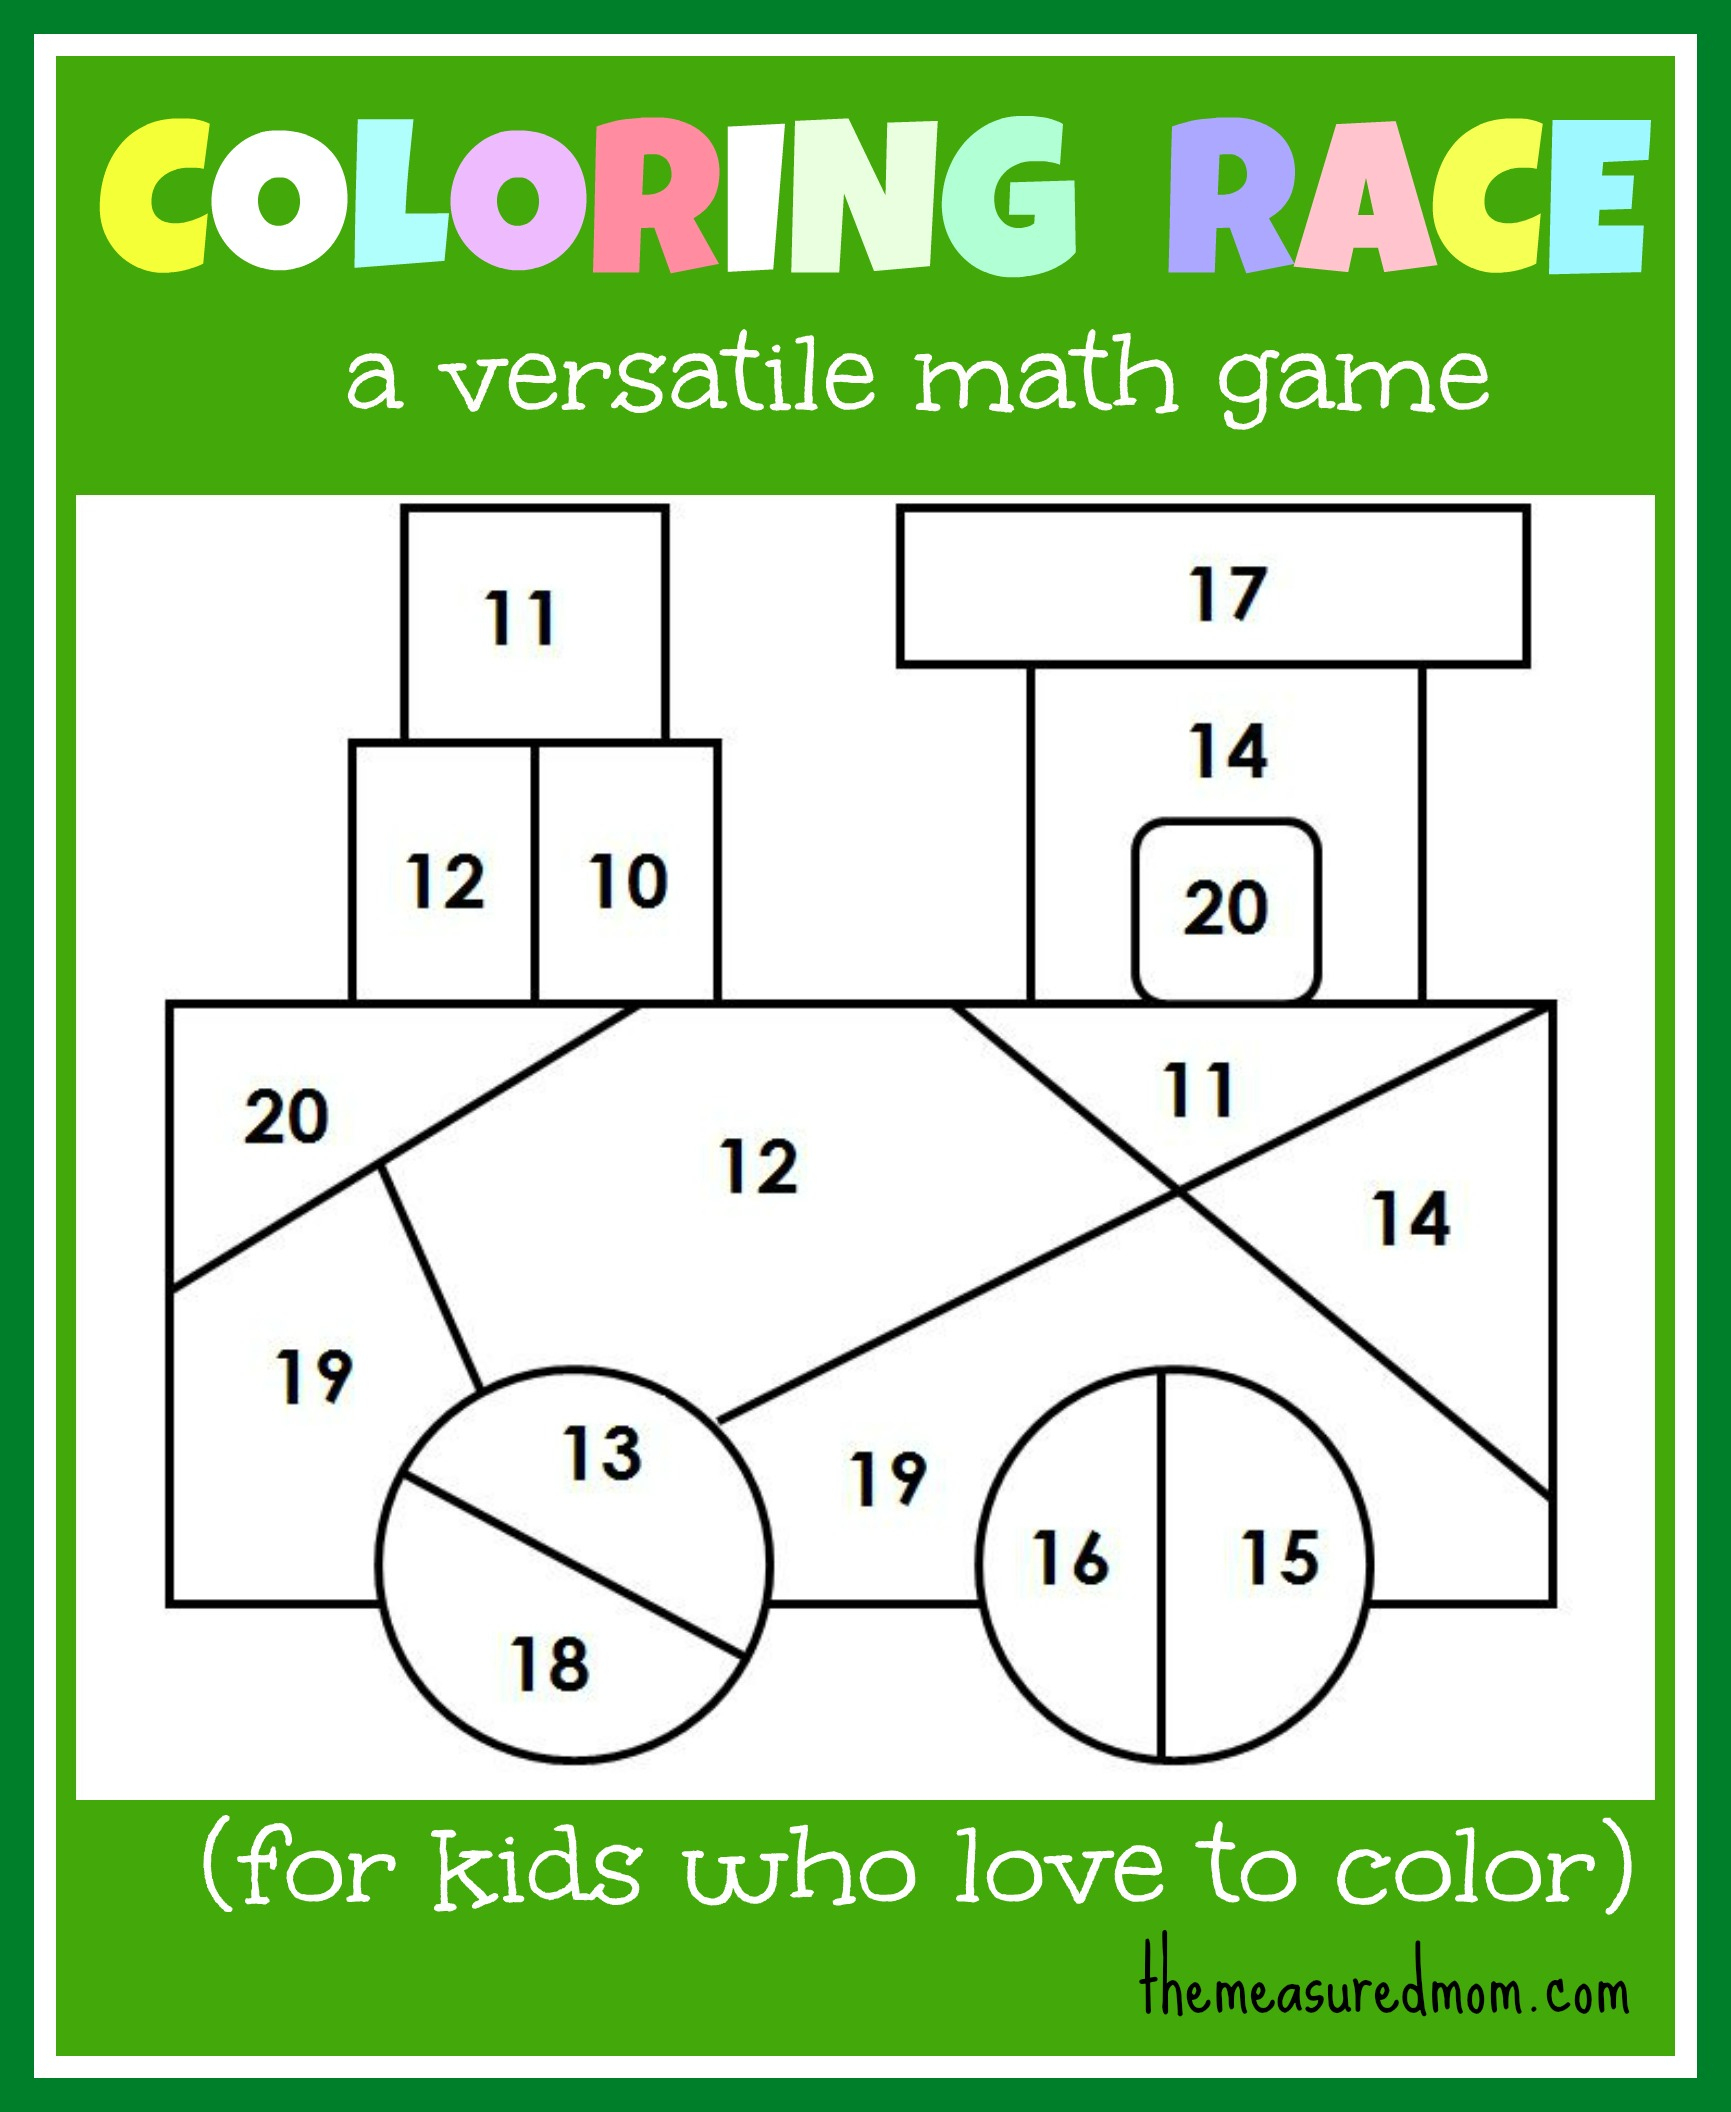 Math Game For Kids: Coloring Race Combines Math And Coloring - The - Free Printable Maths Games